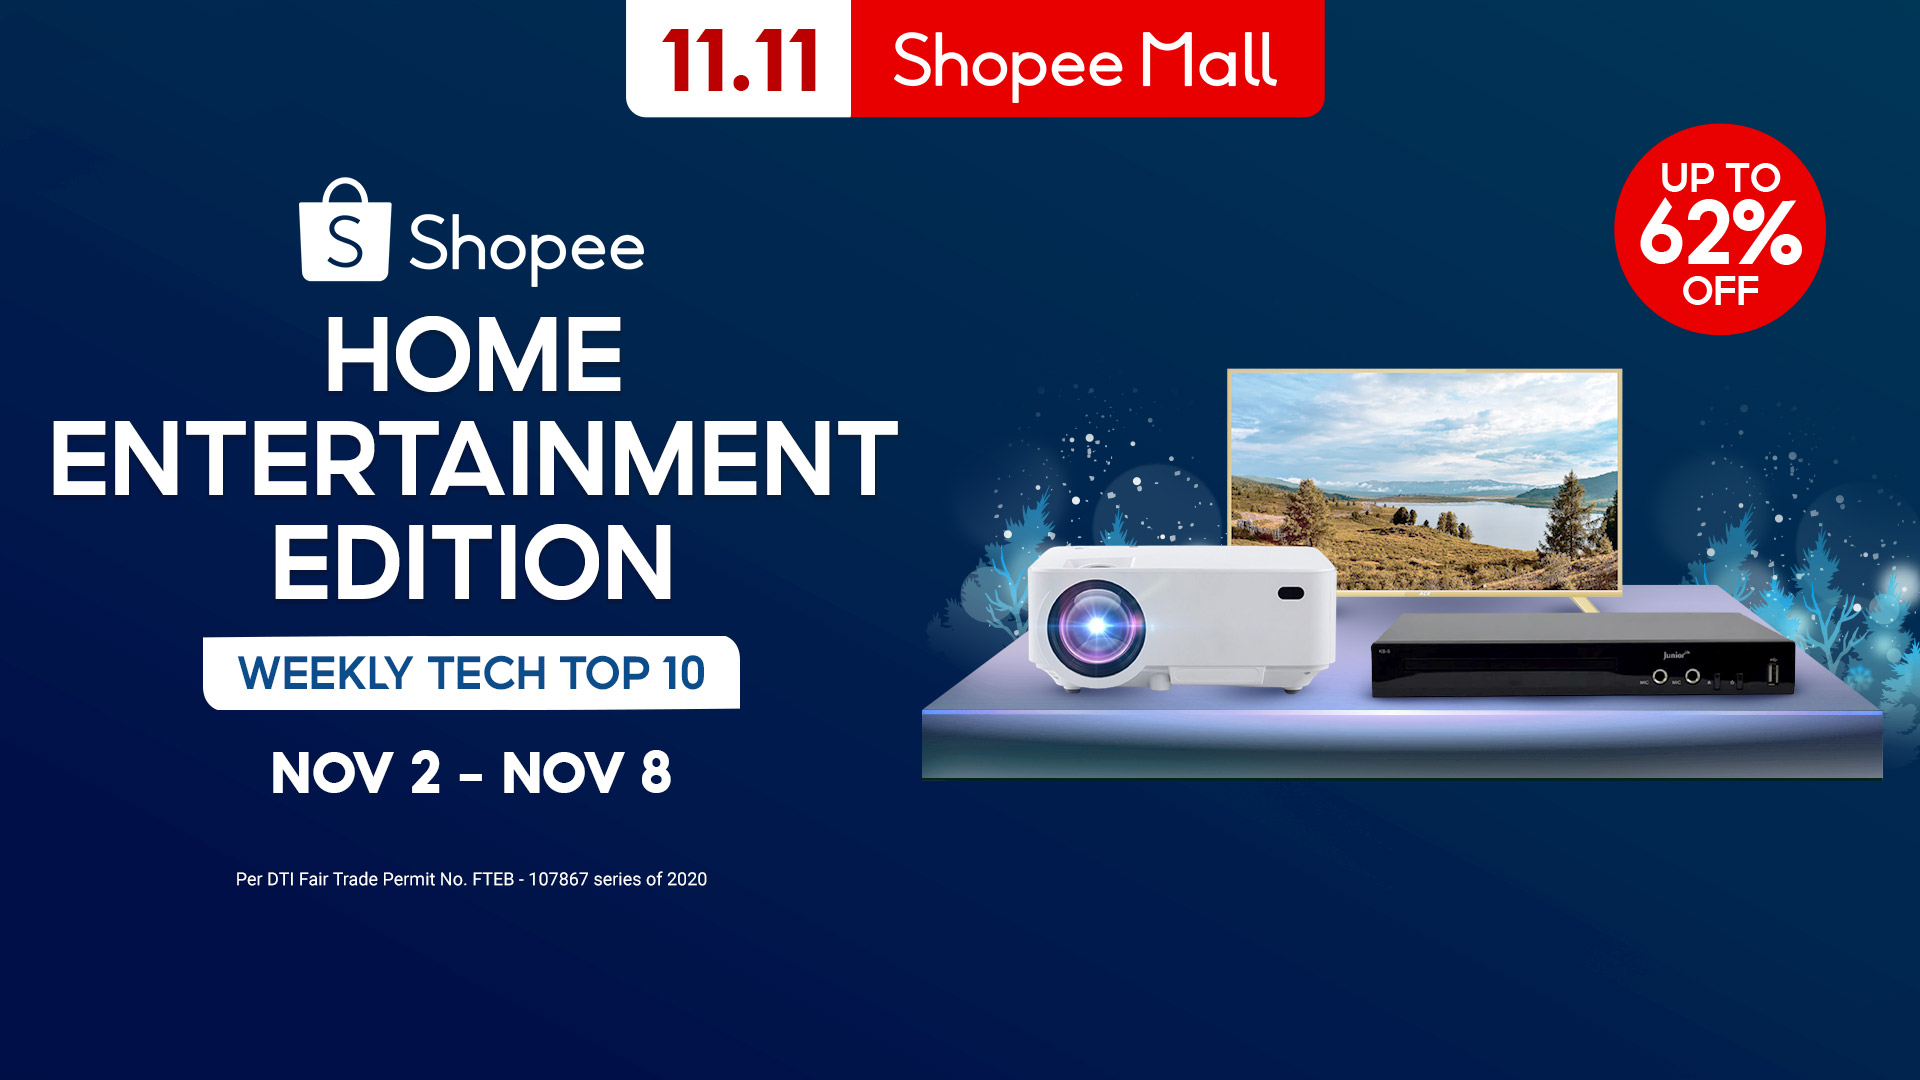 Shopee's Weekly Tech Top 10: How to Make Sure You Don't Miss Out On Quality Time With Your Loved Ones During The Holidays